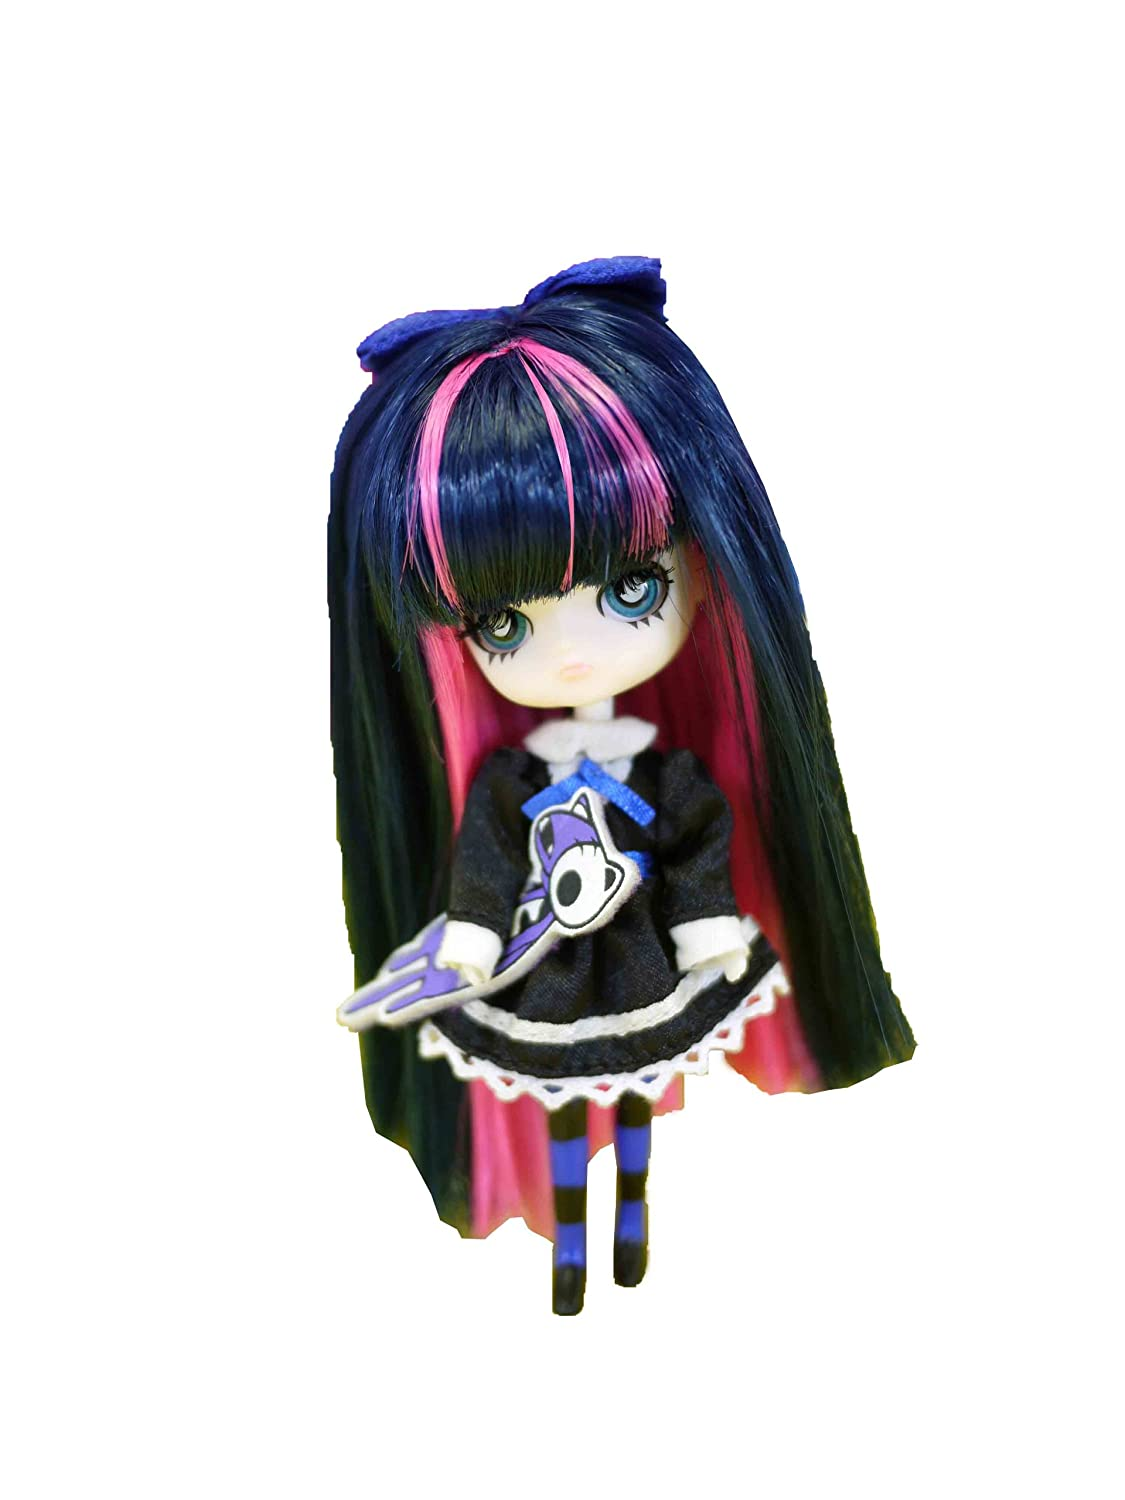 Top 10 Best Pullip Fashion Dolls for Girls 2019-2020 on Flipboard by Mariah Lolas